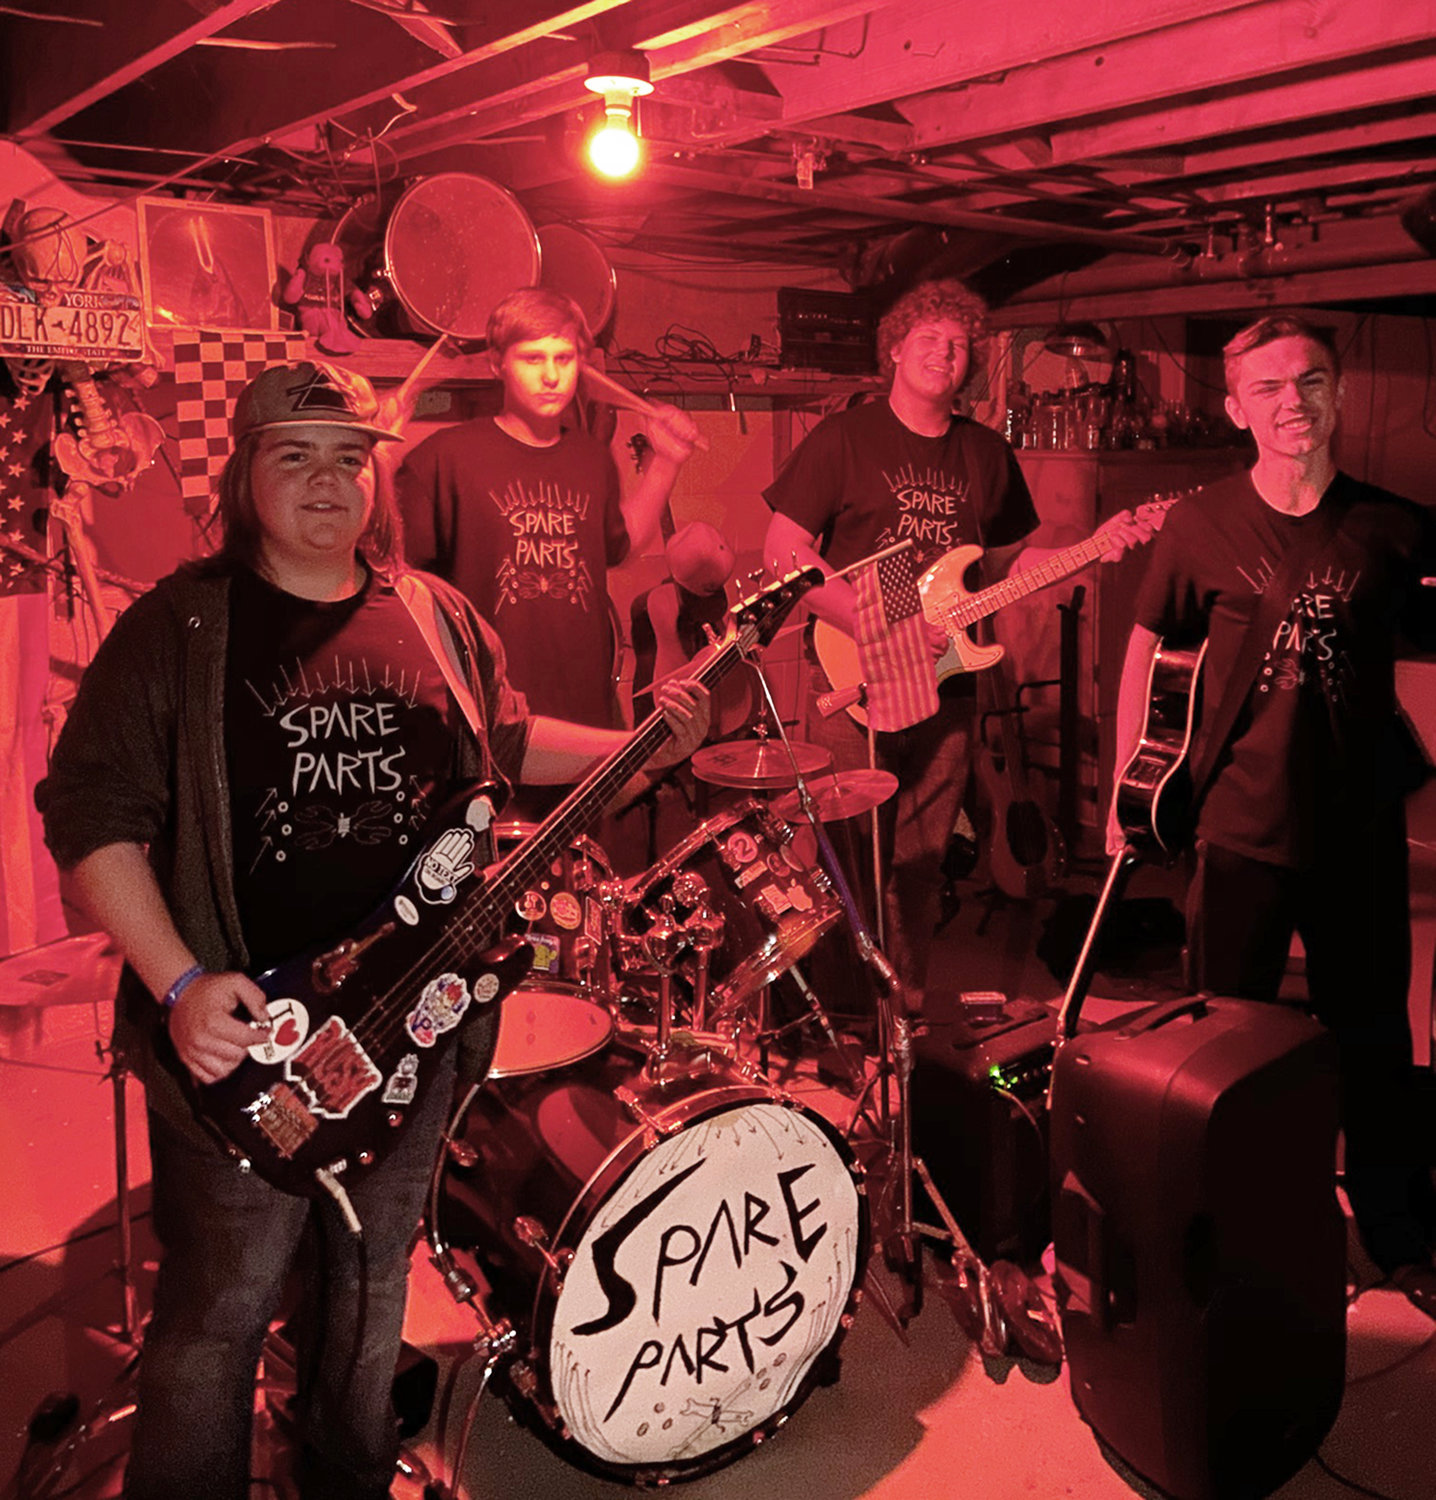 ROCK OUT — Spare Parts, a local band of students from Oneida High School, will perform at the Oneida Elks Lodge for their Cabin Fever Party. The event is open to the public.